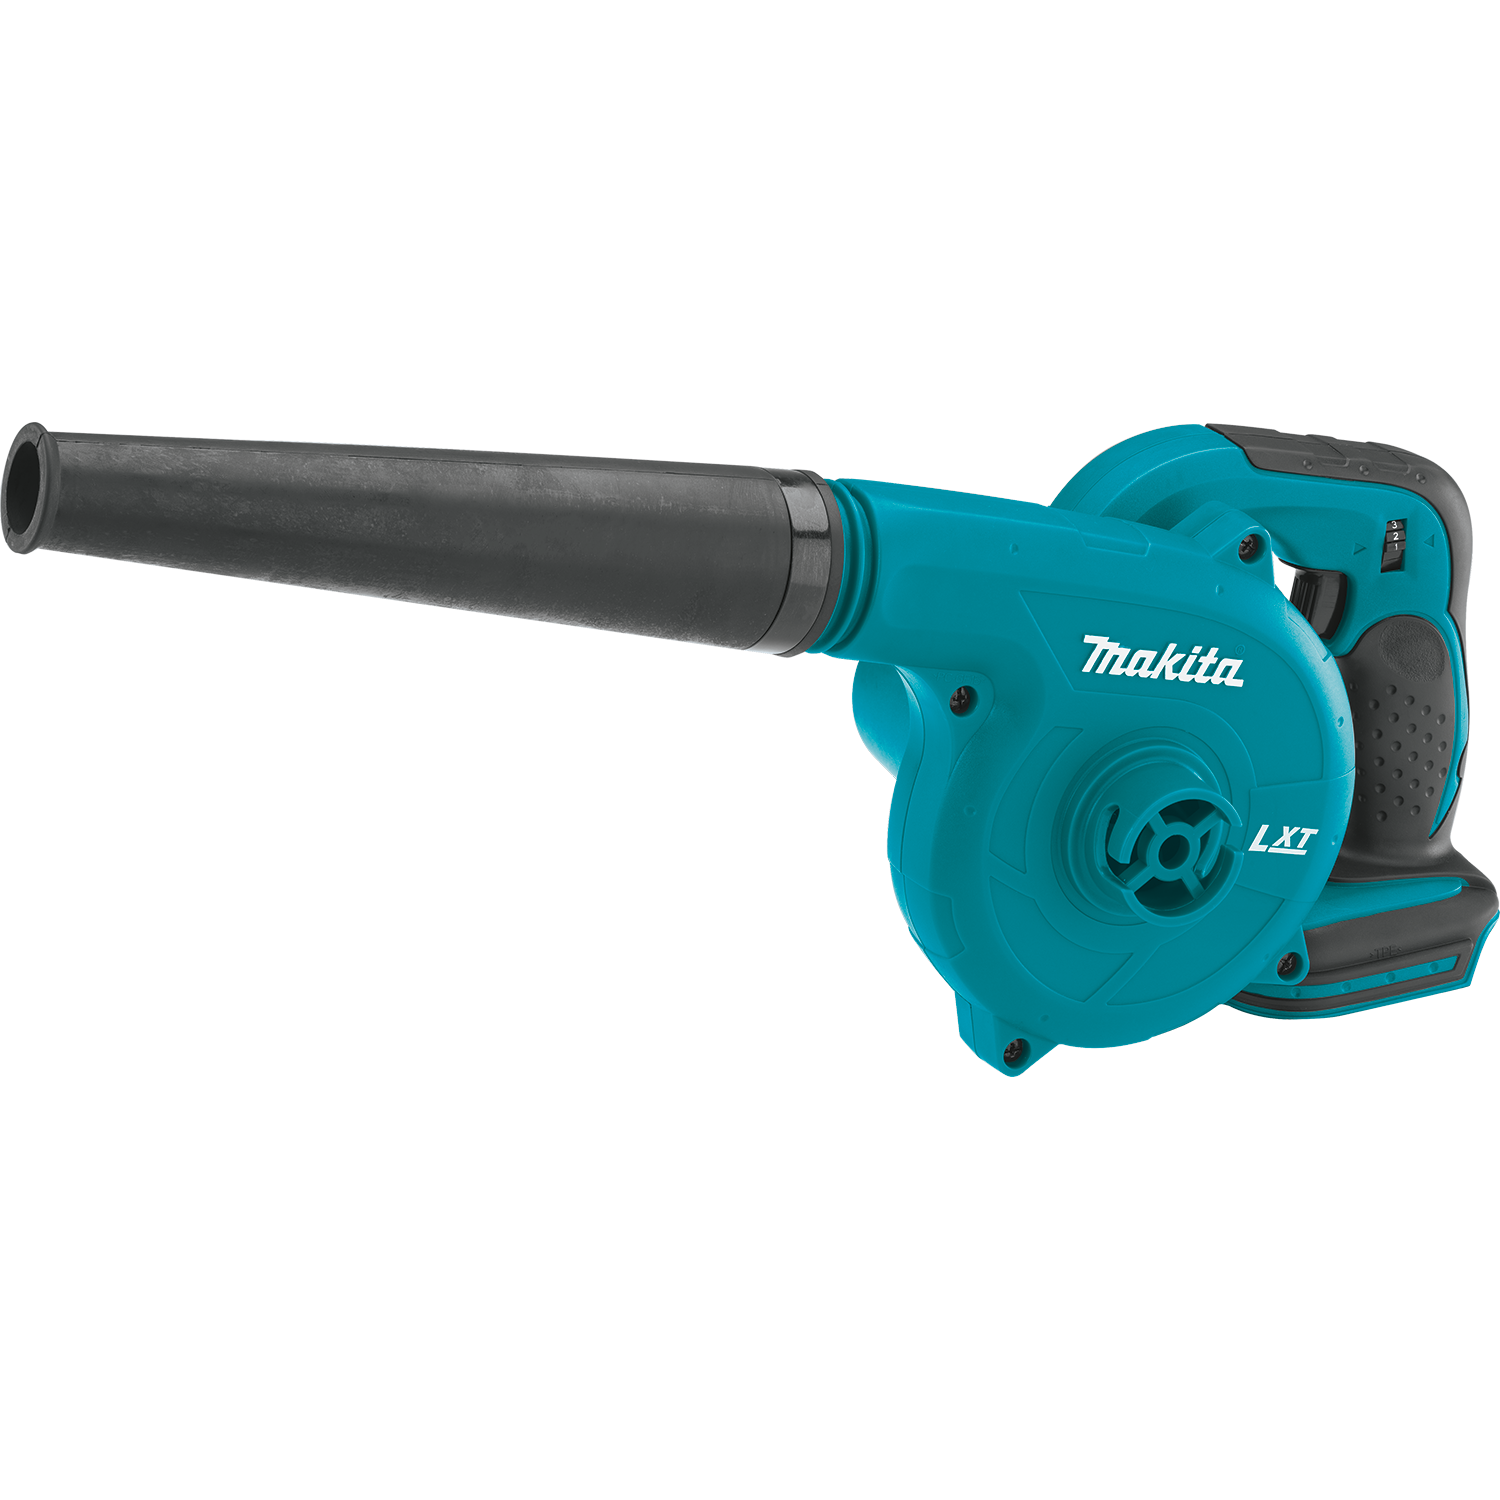 Makita USA - Product Details -DUB182Z